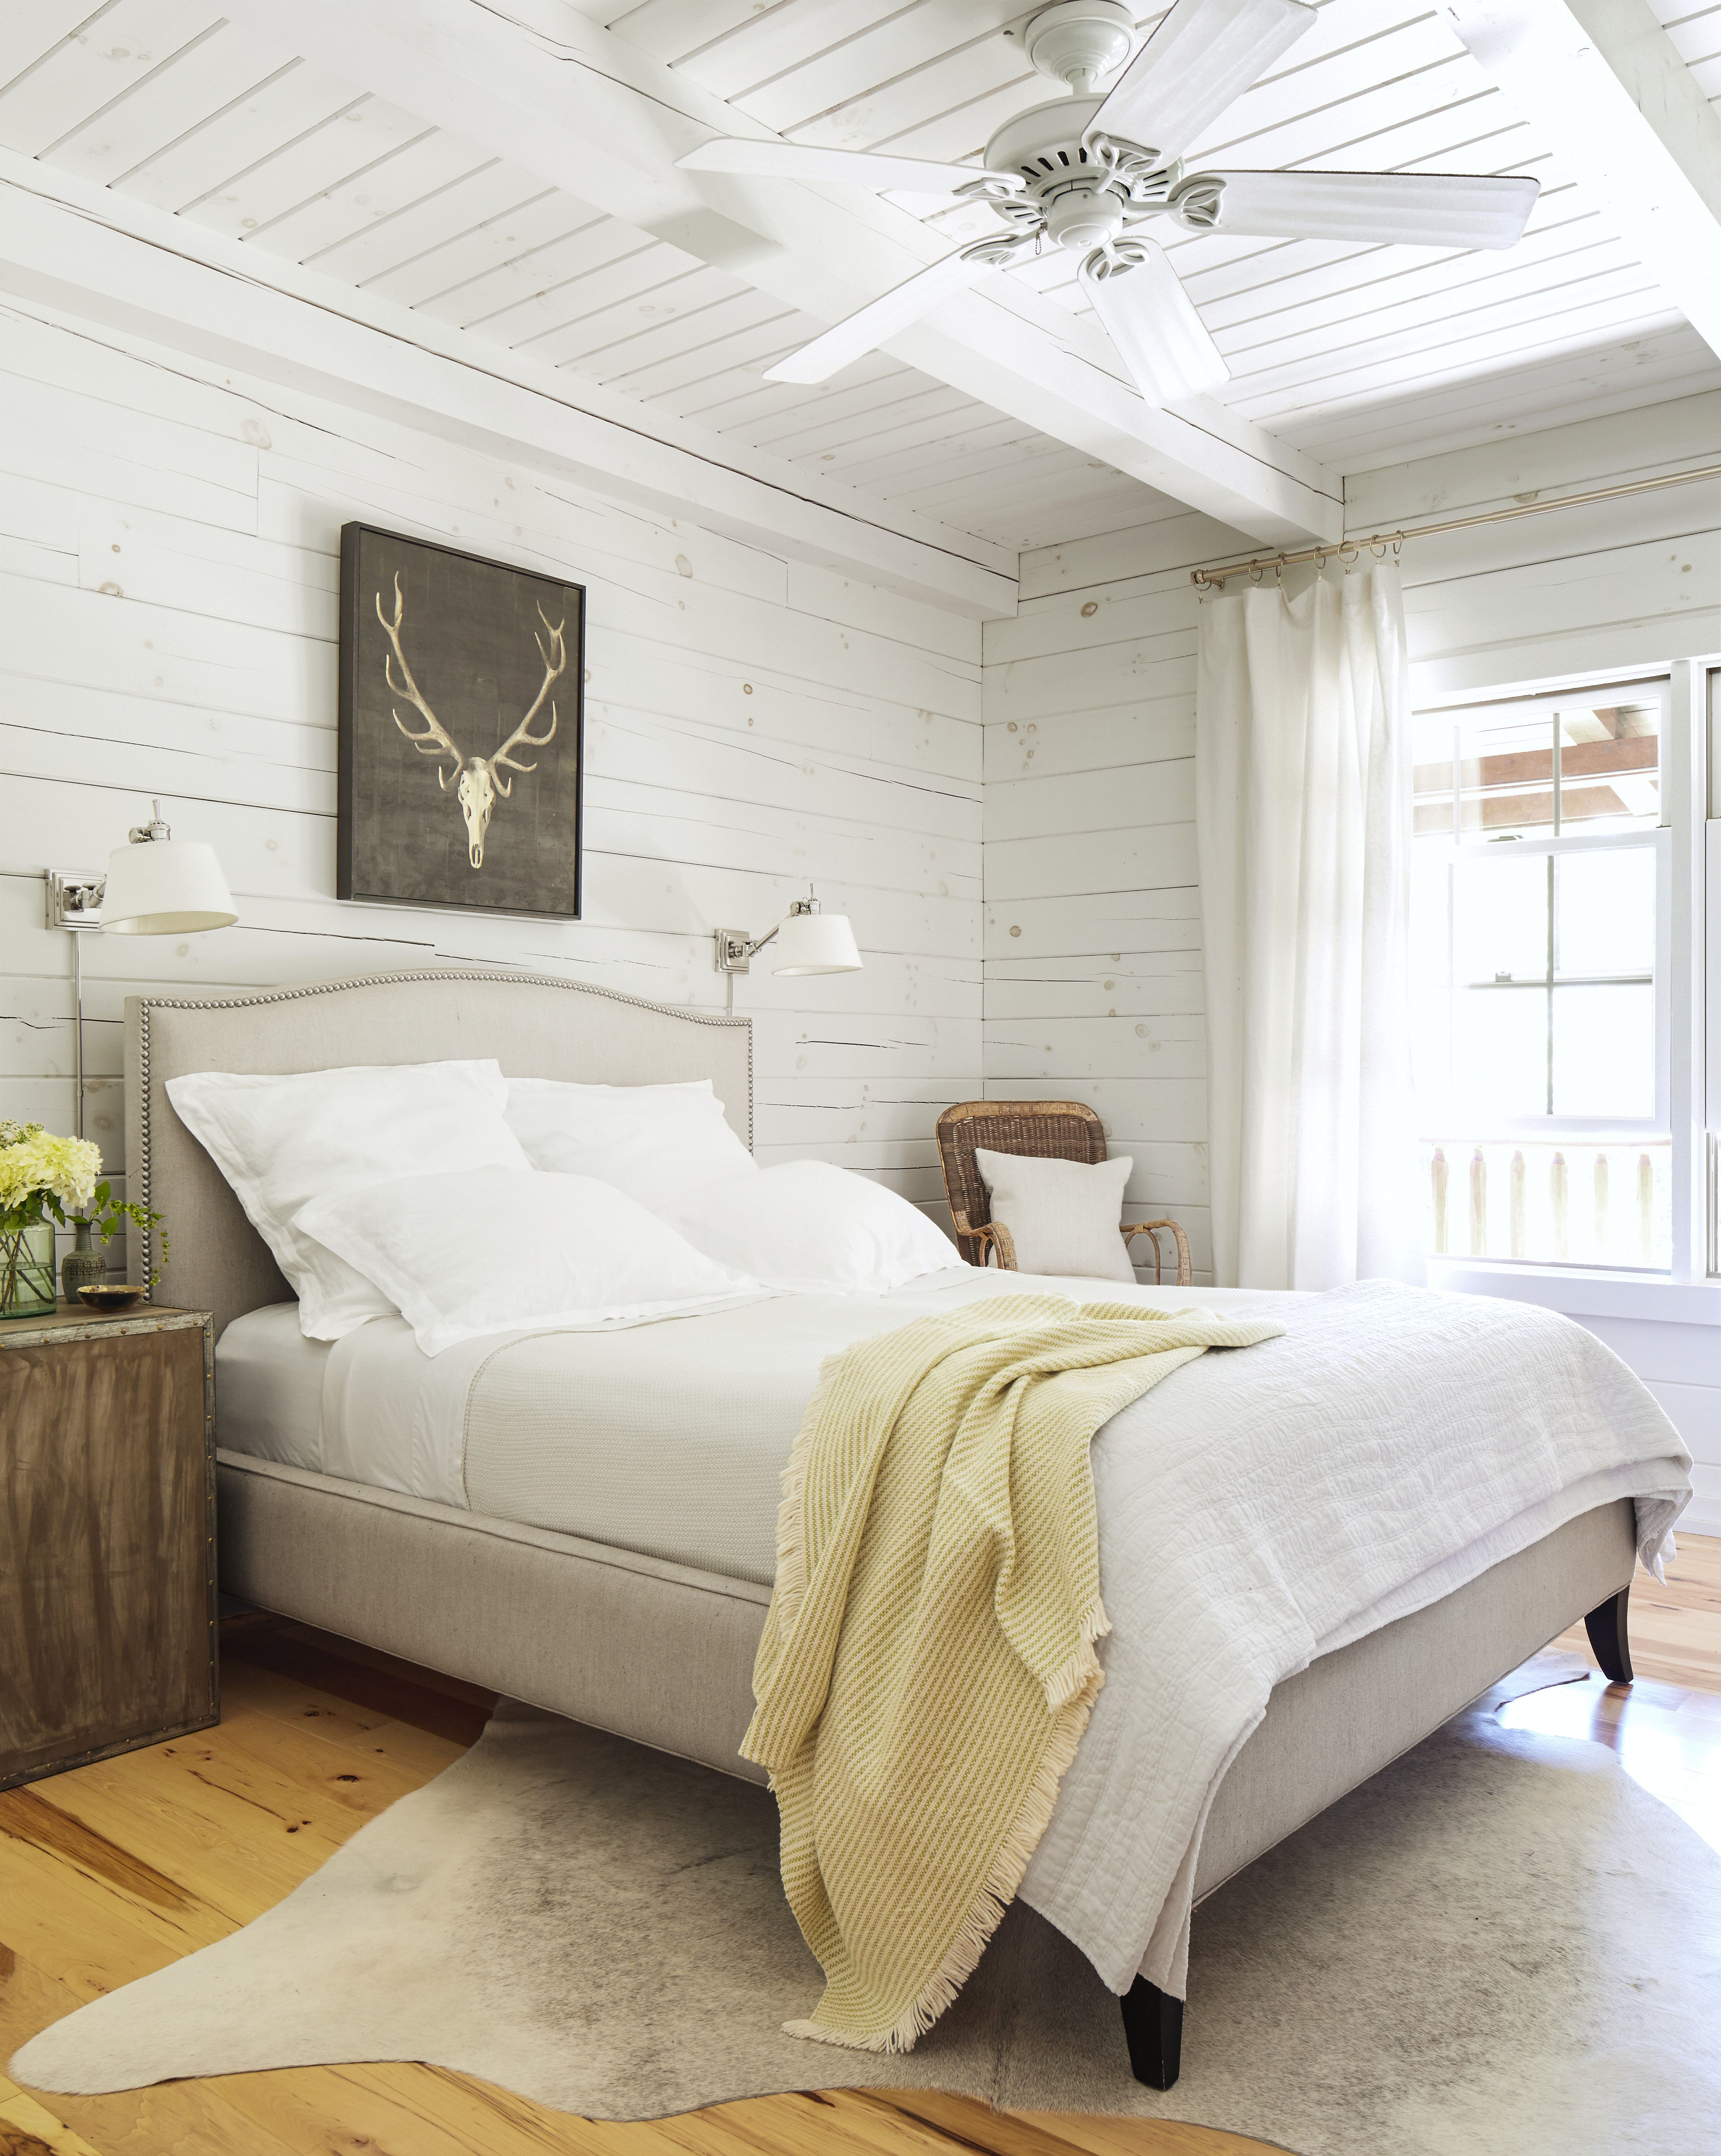 neutral country bedroom & 55 Bedroom Decorating Ideas - How to Design a Master Bedroom